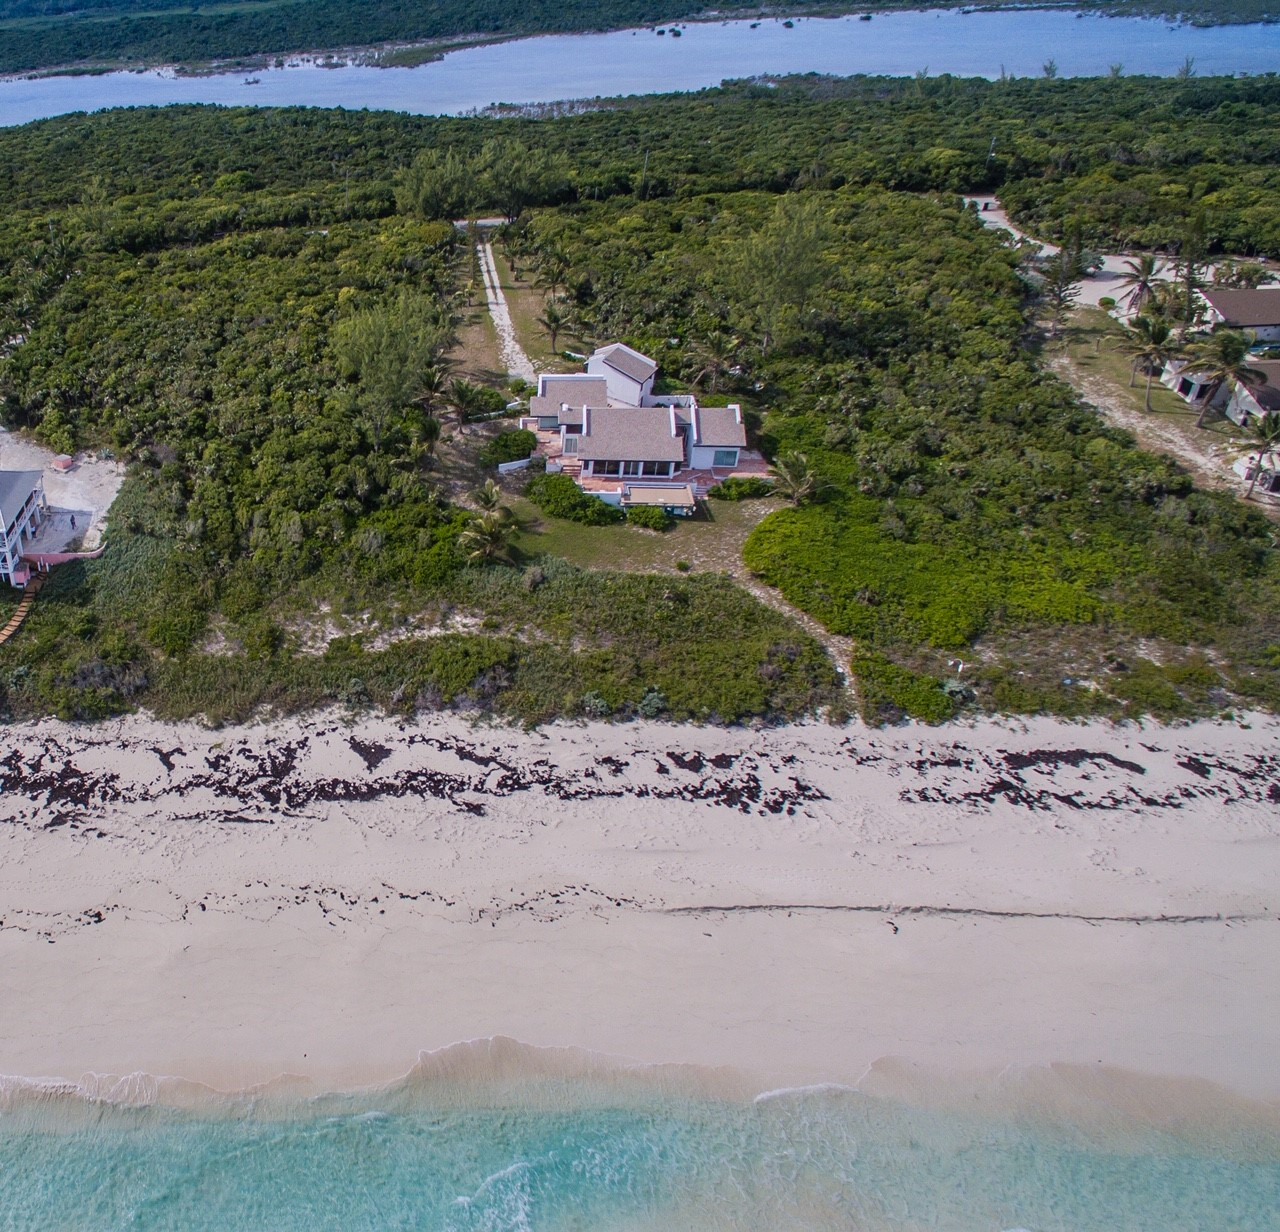 Beachfront home for sale in The Bahamas